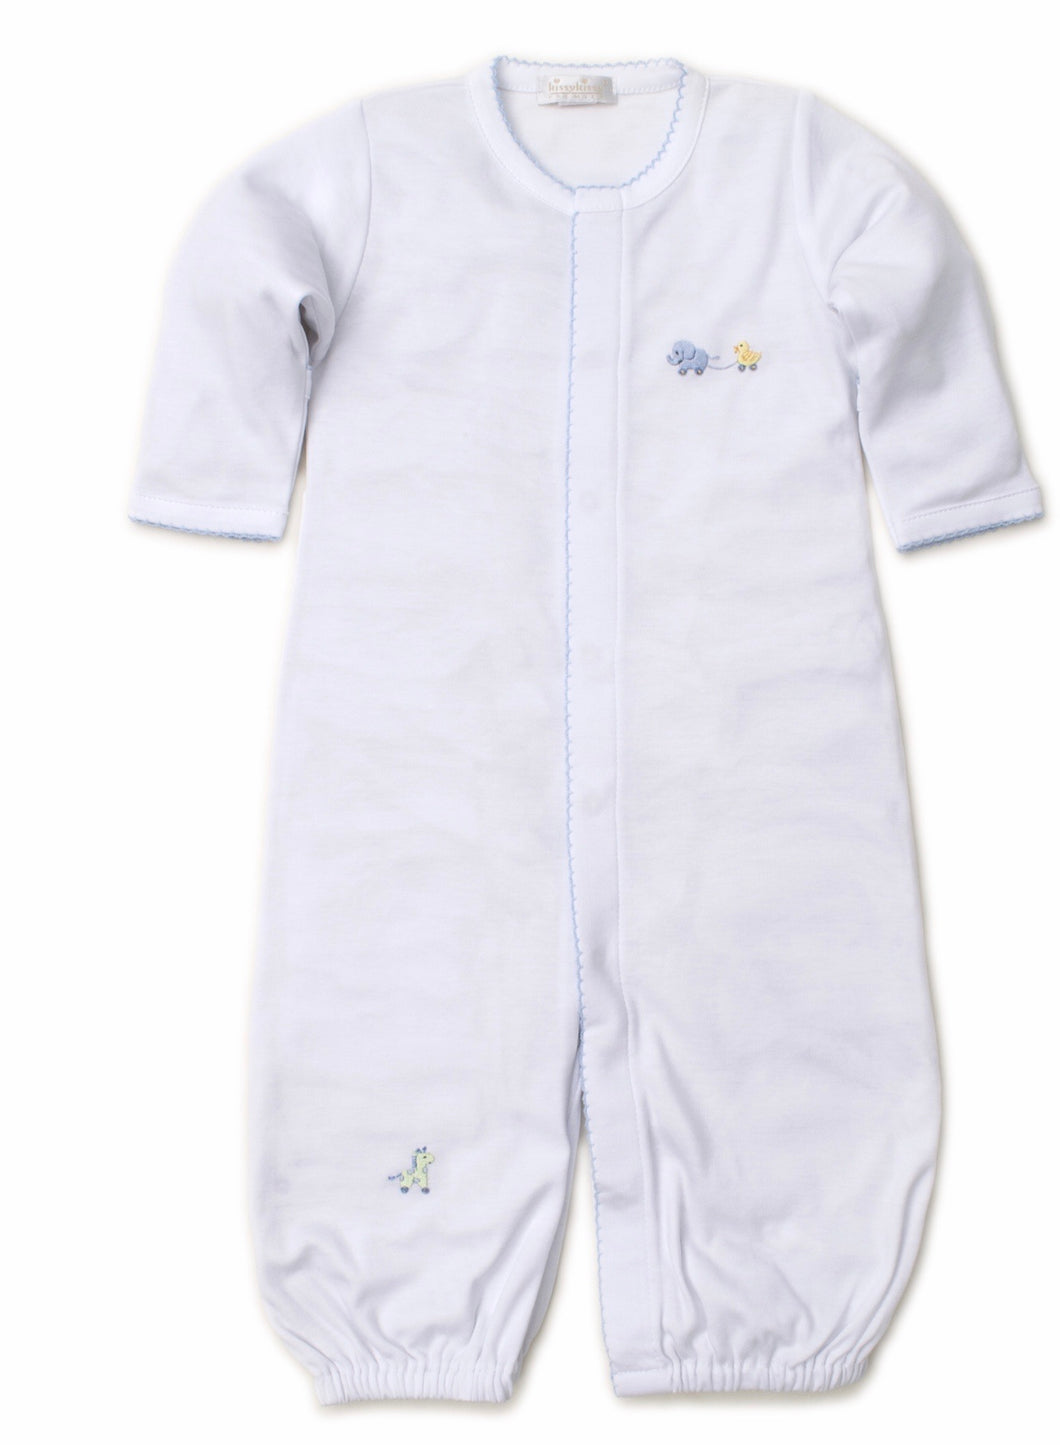 White/Blue Pull Toys Converter Gown